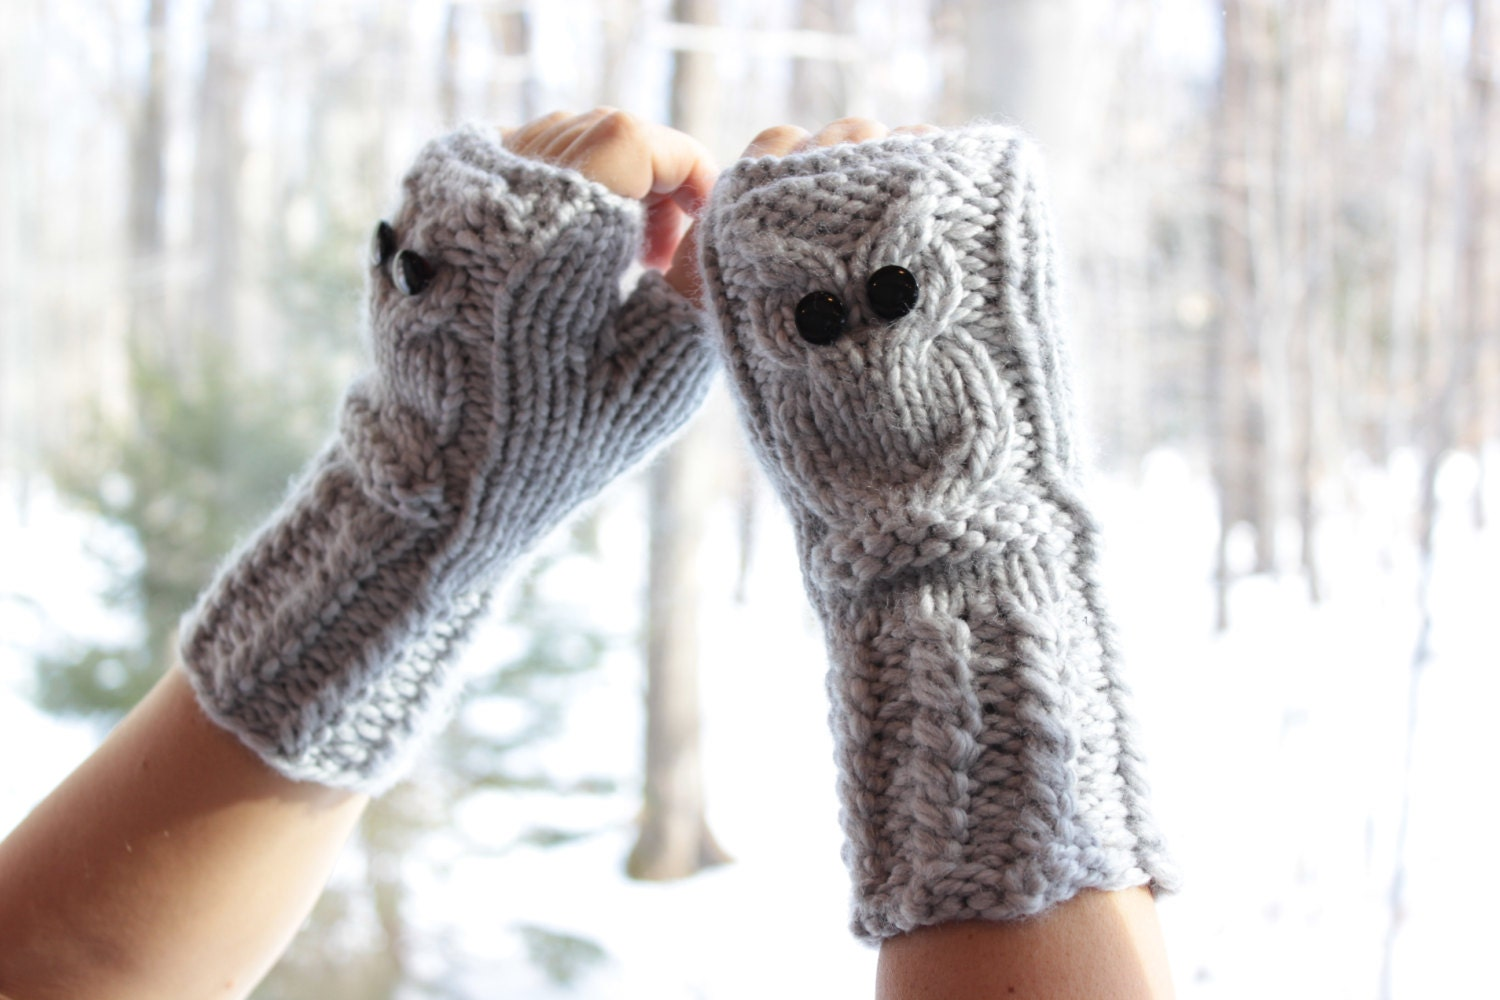 Owl Fingerless Gloves in grey mittens hand knitted wrist